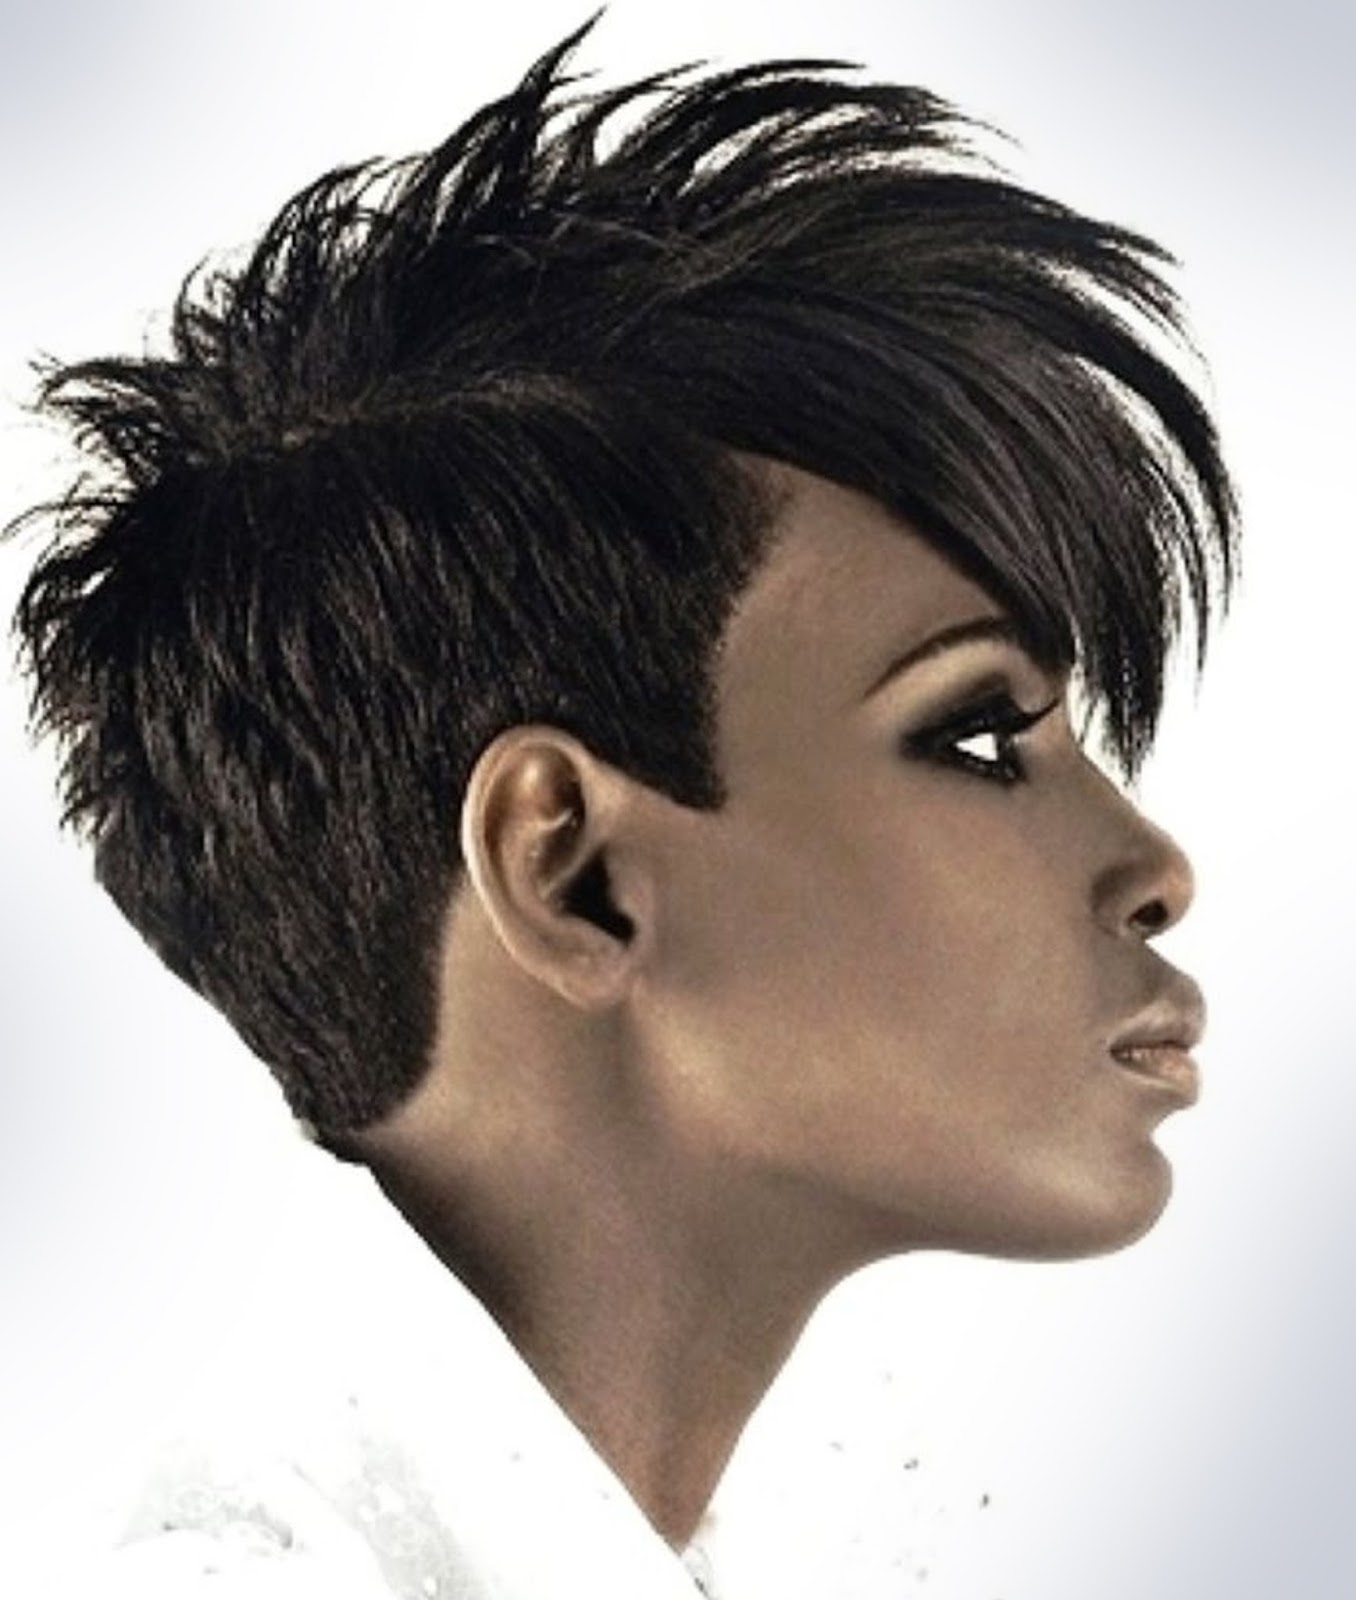 Short Natural Hair On Black Woman